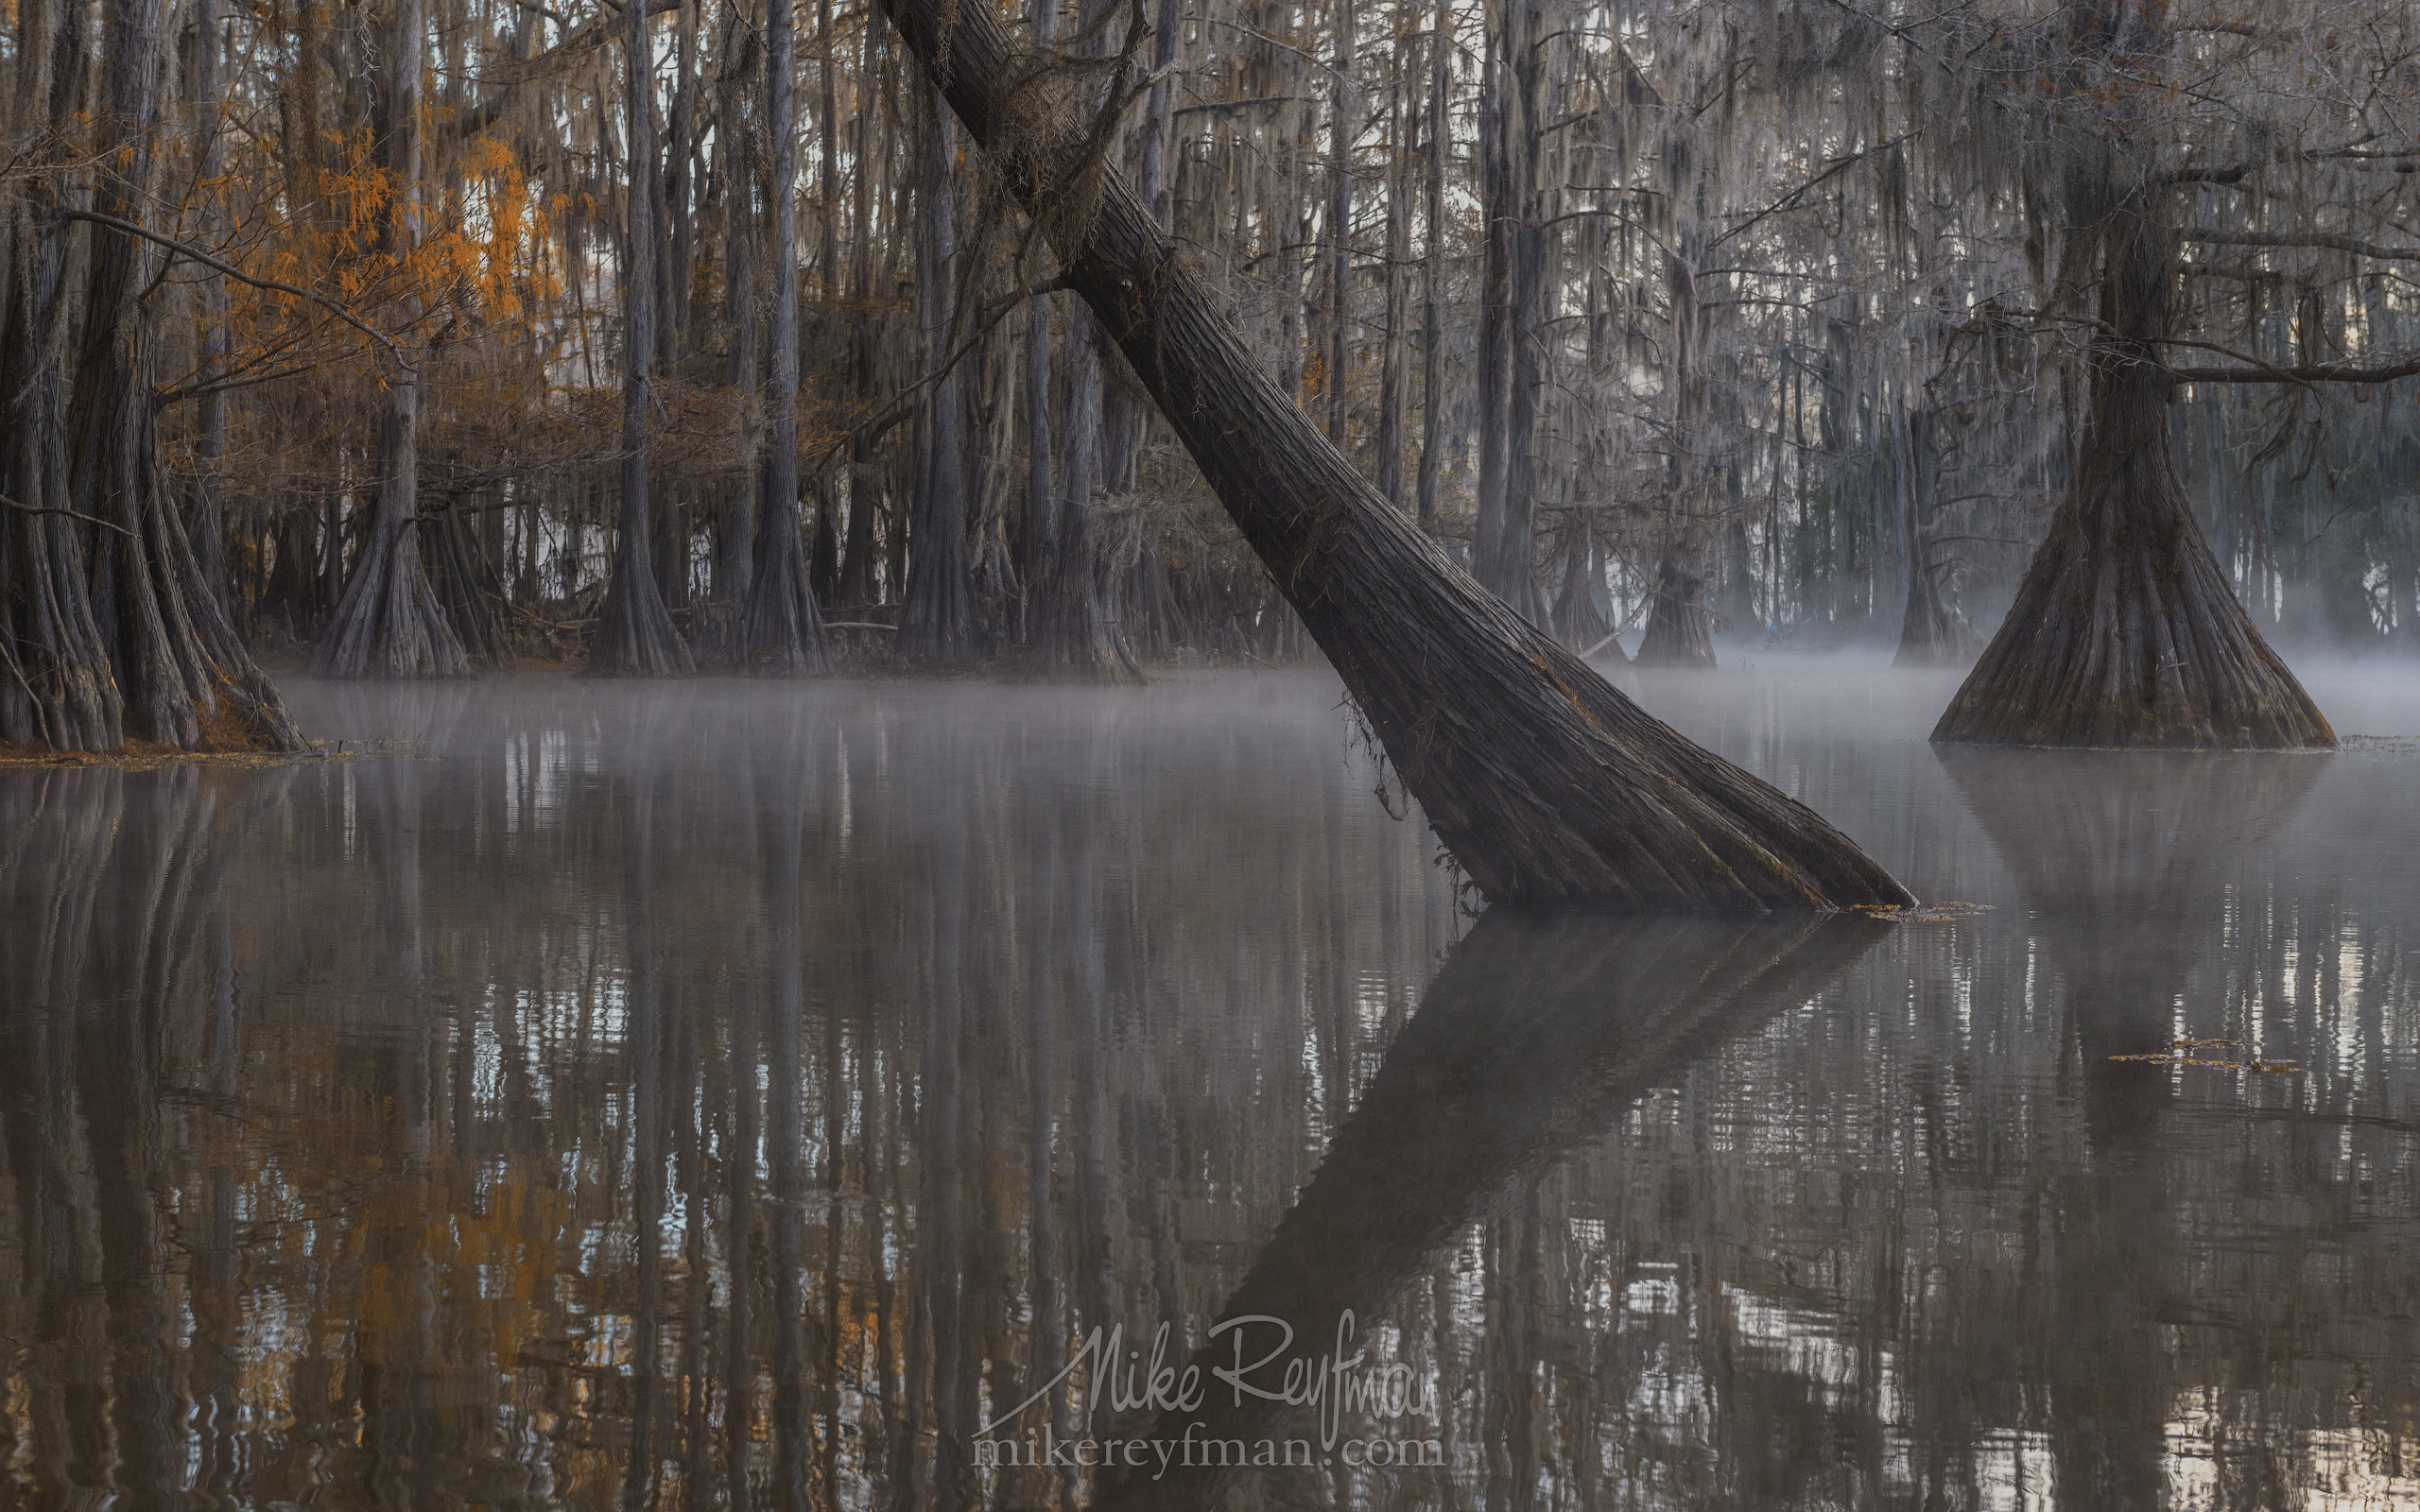 Bald Cypress trees in the swamp. Foggy morning on Caddo Lake, Texas, US 013-LT1-50A3321.jpg - Bold Cypress and Tupelo Trees in the swamps of Atchafalaya River Basin. Caddo, Martin and Fousse Lakes. Texas/Louisiana, USA. - Mike Reyfman Photography